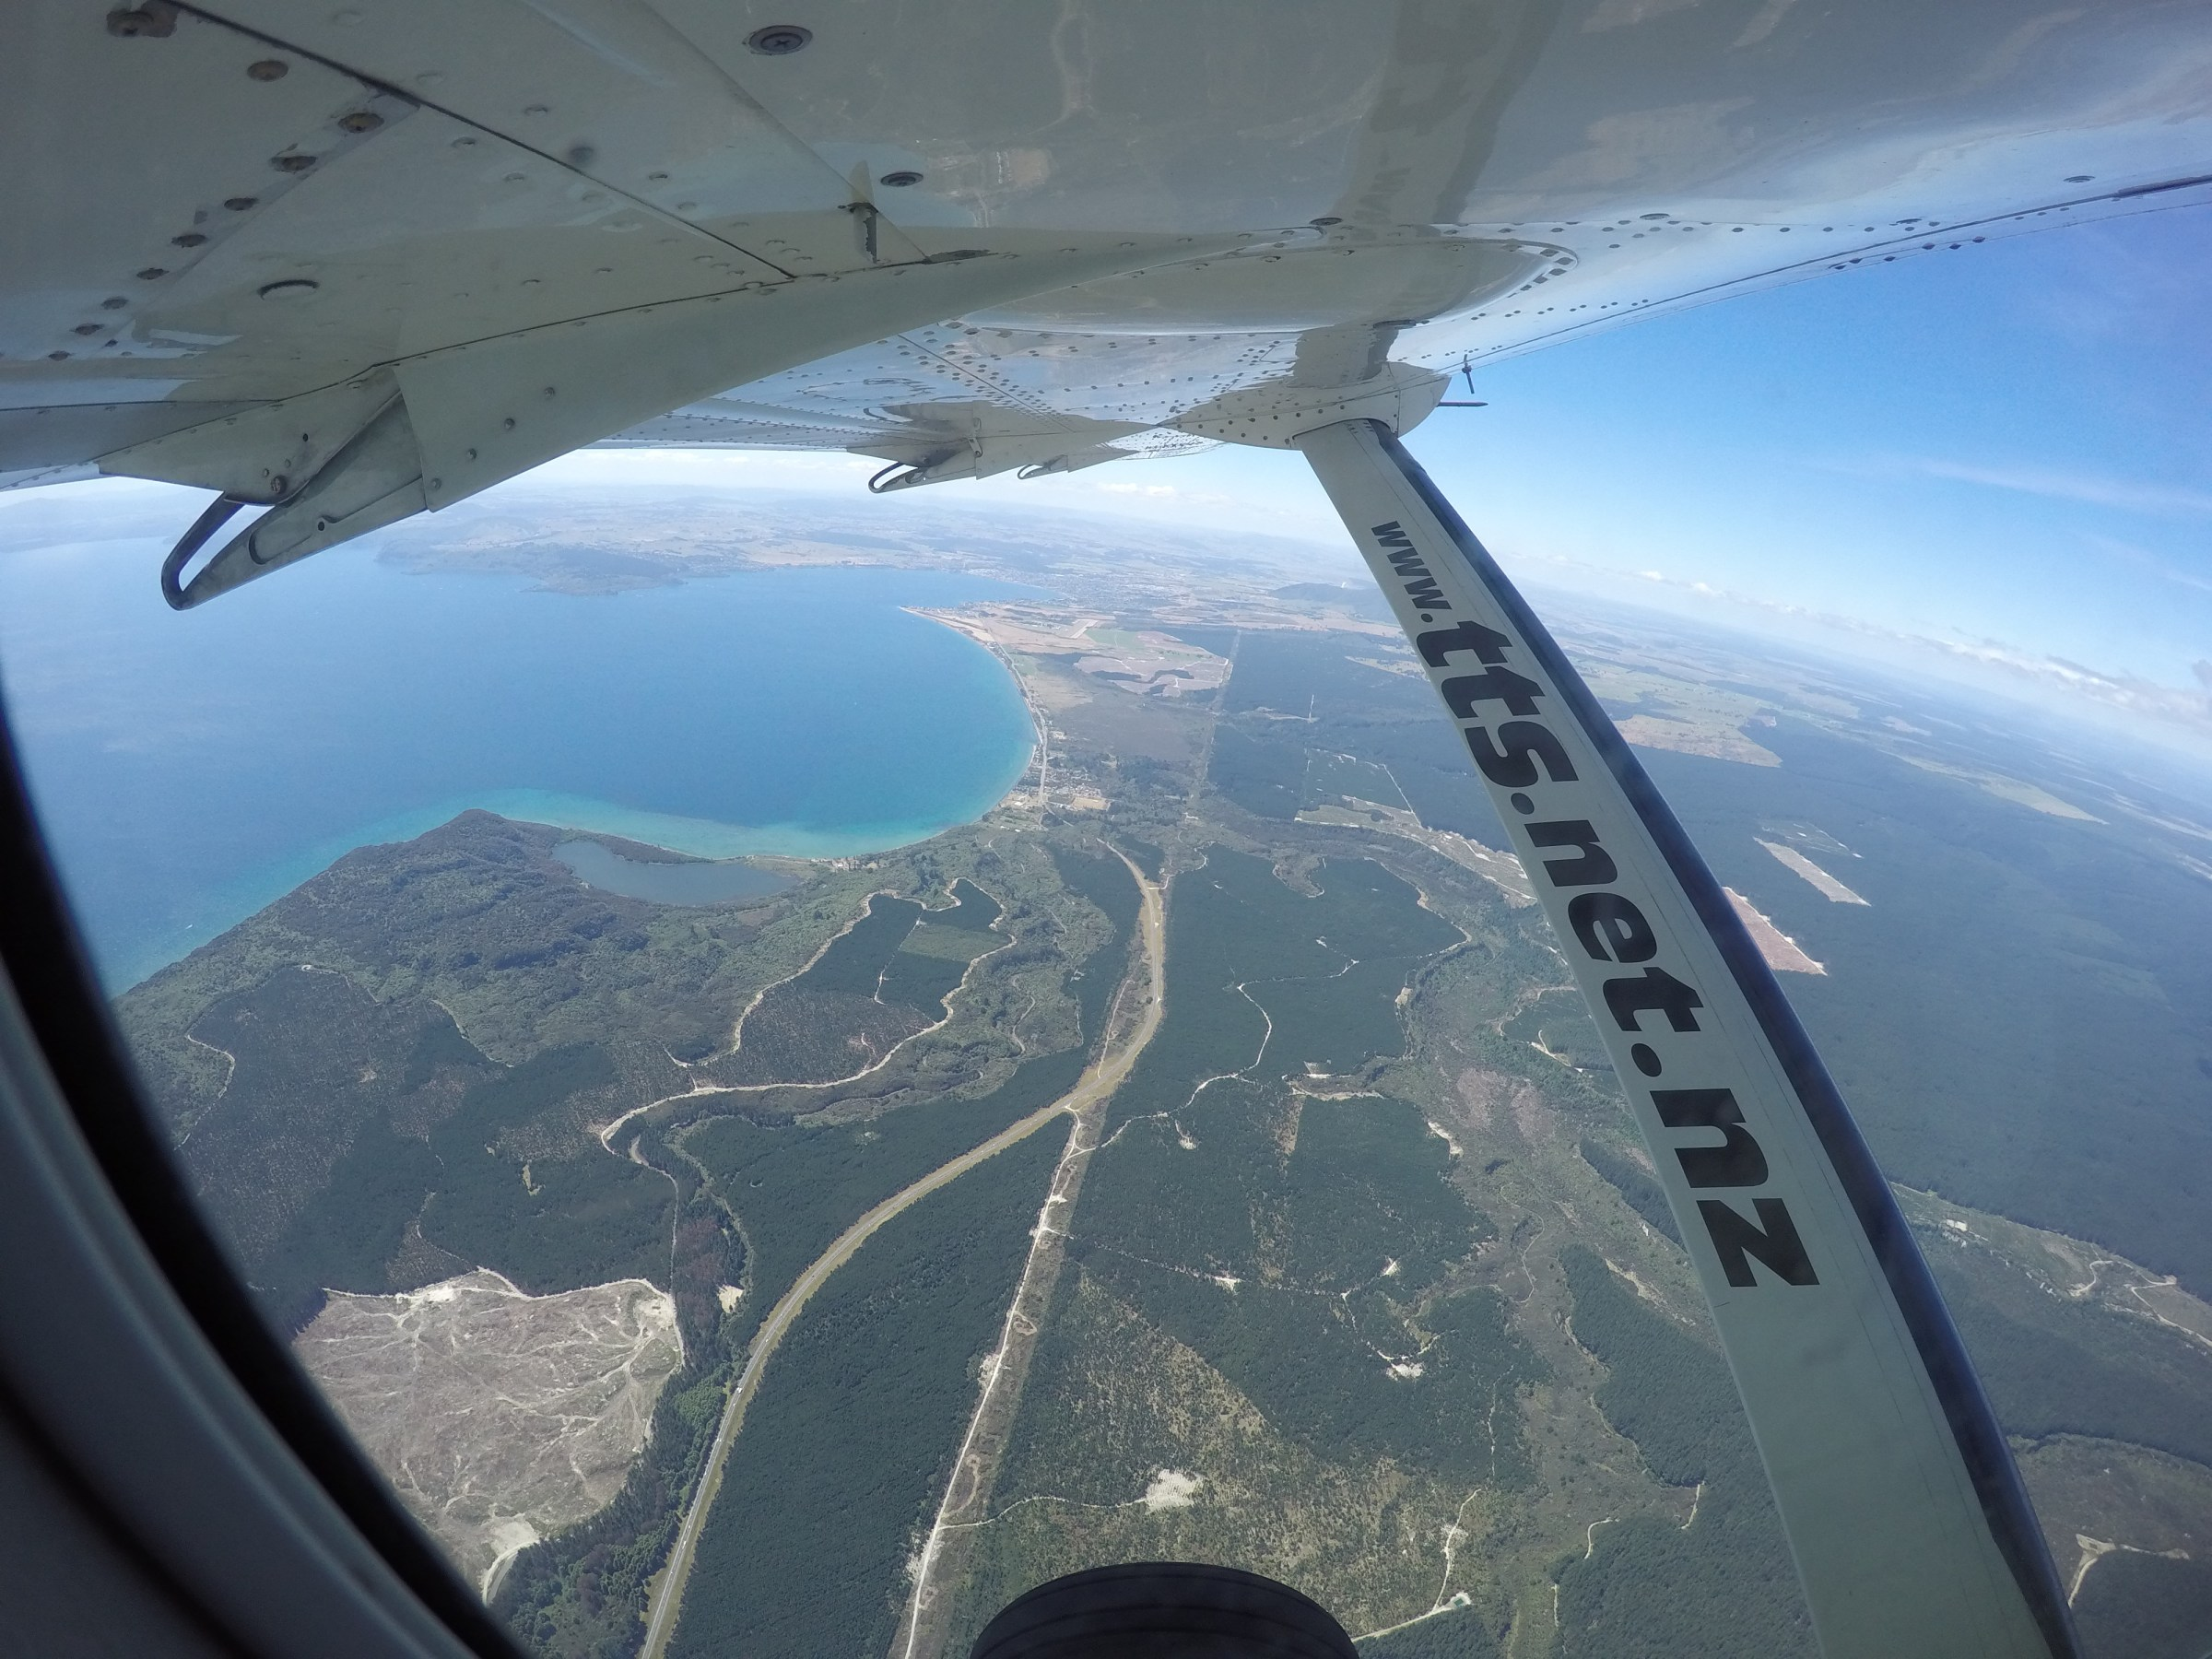 Looking out the plane window over Lake Taupo in New Zealand